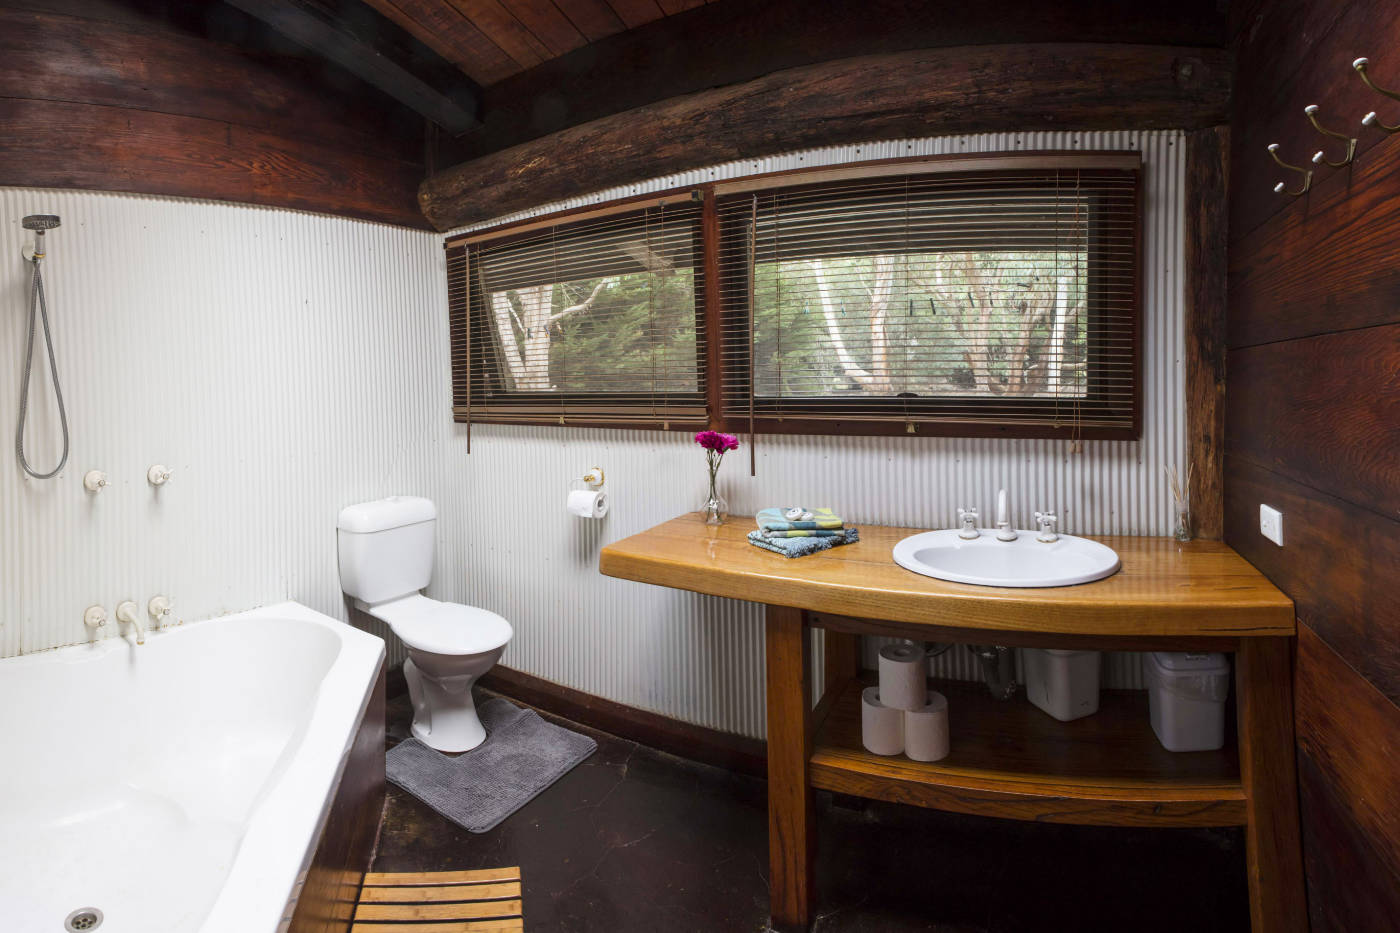 Wirrega bathroom facilities are a blend of modern and rustic